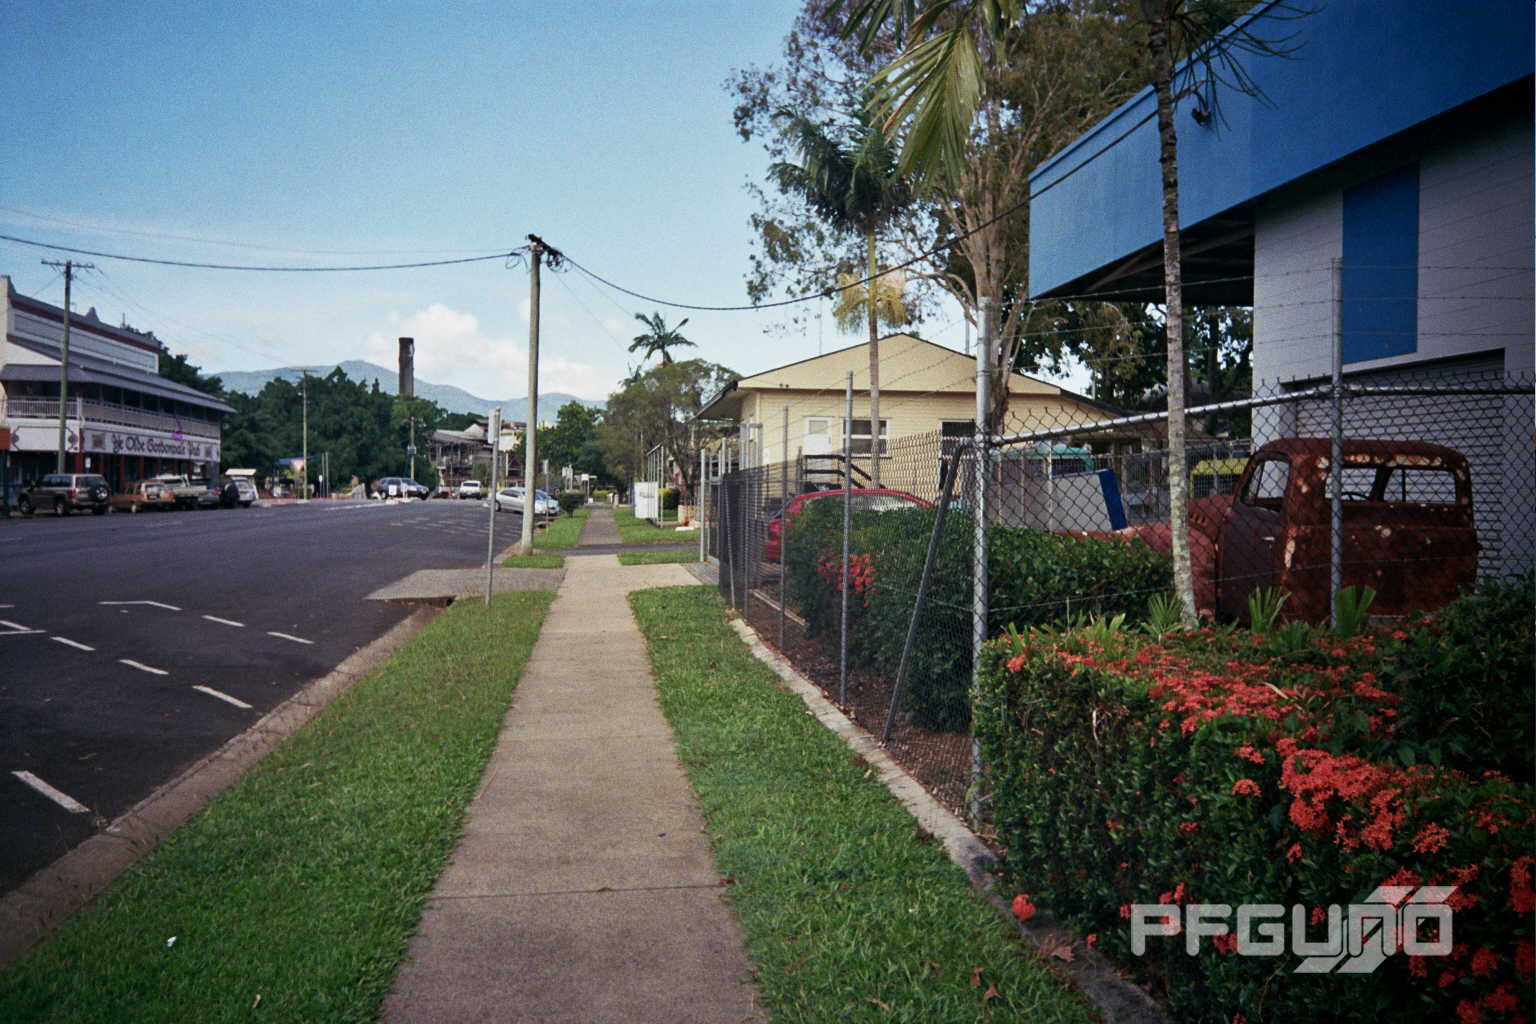 Footpath Down The Street